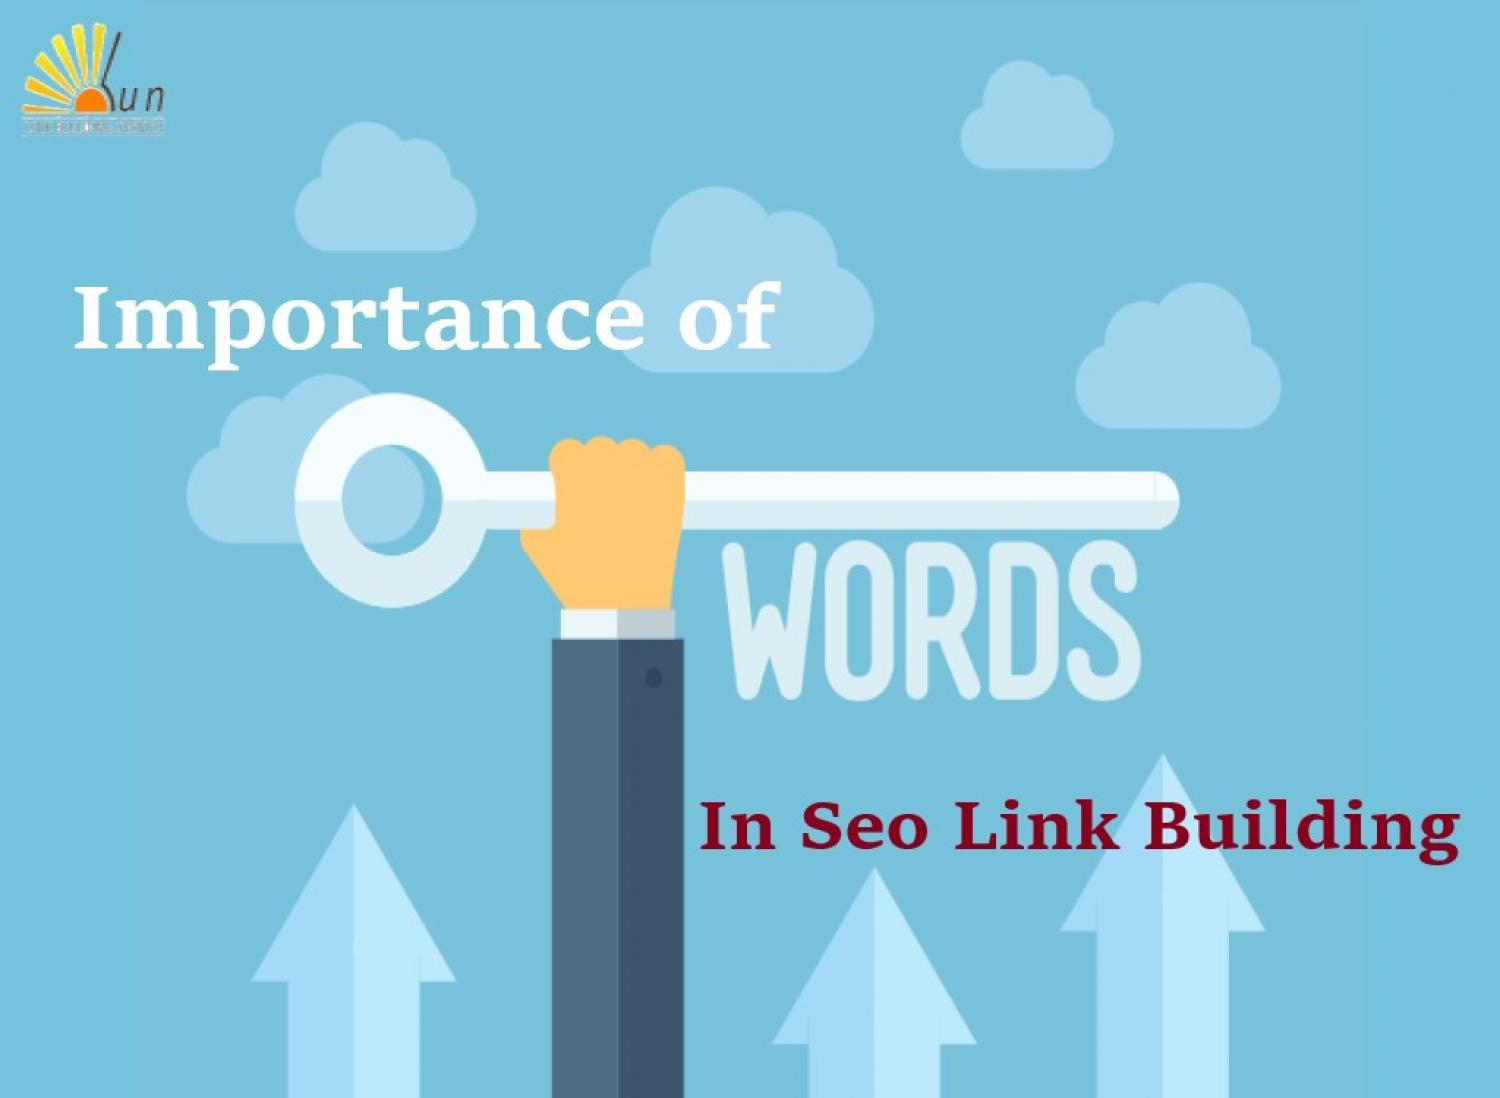 Importance of Keywords In SEO Link Building